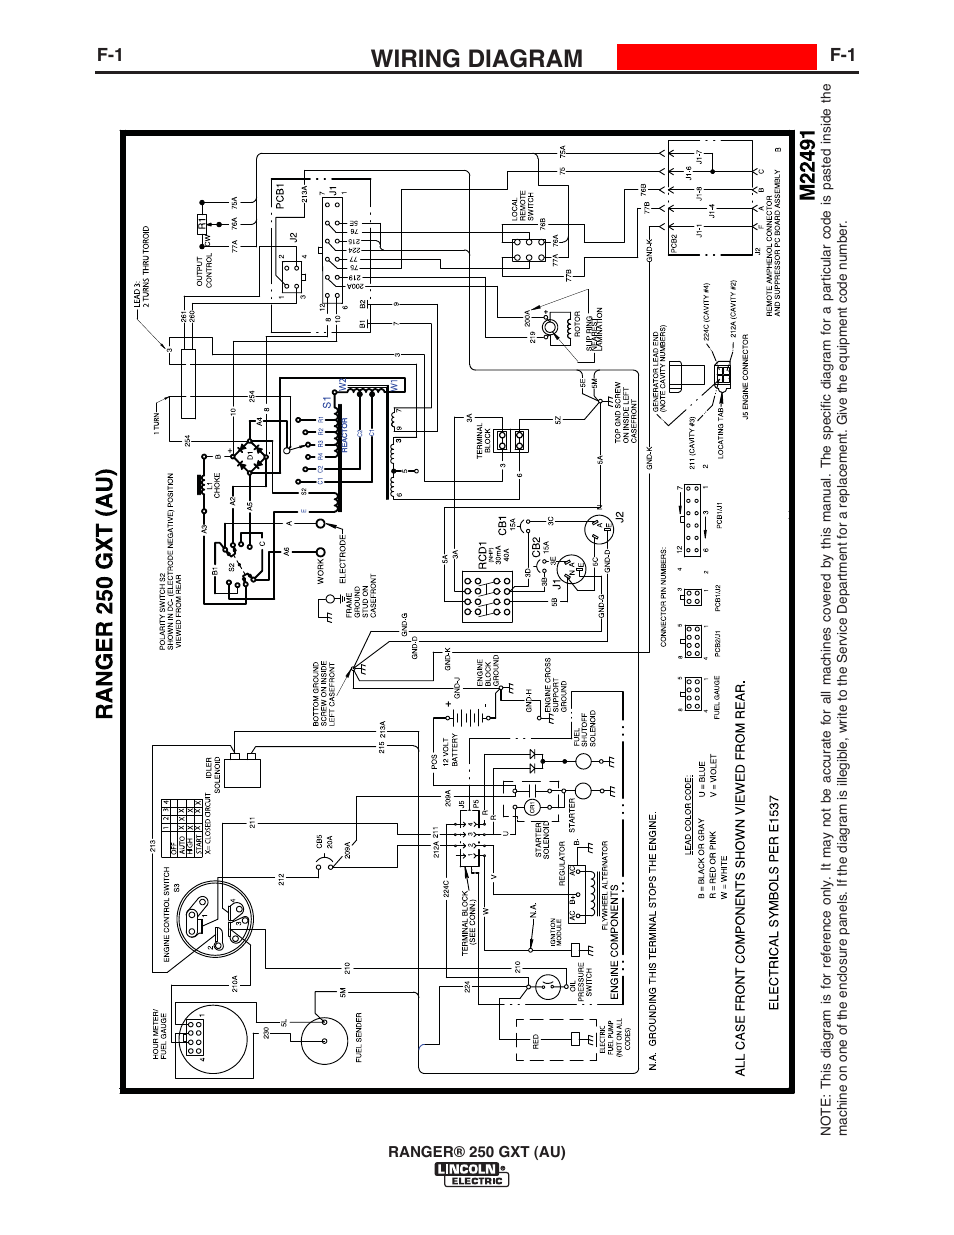 Wiring Electrical Plugs Australia Free Download Wiring Diagrams